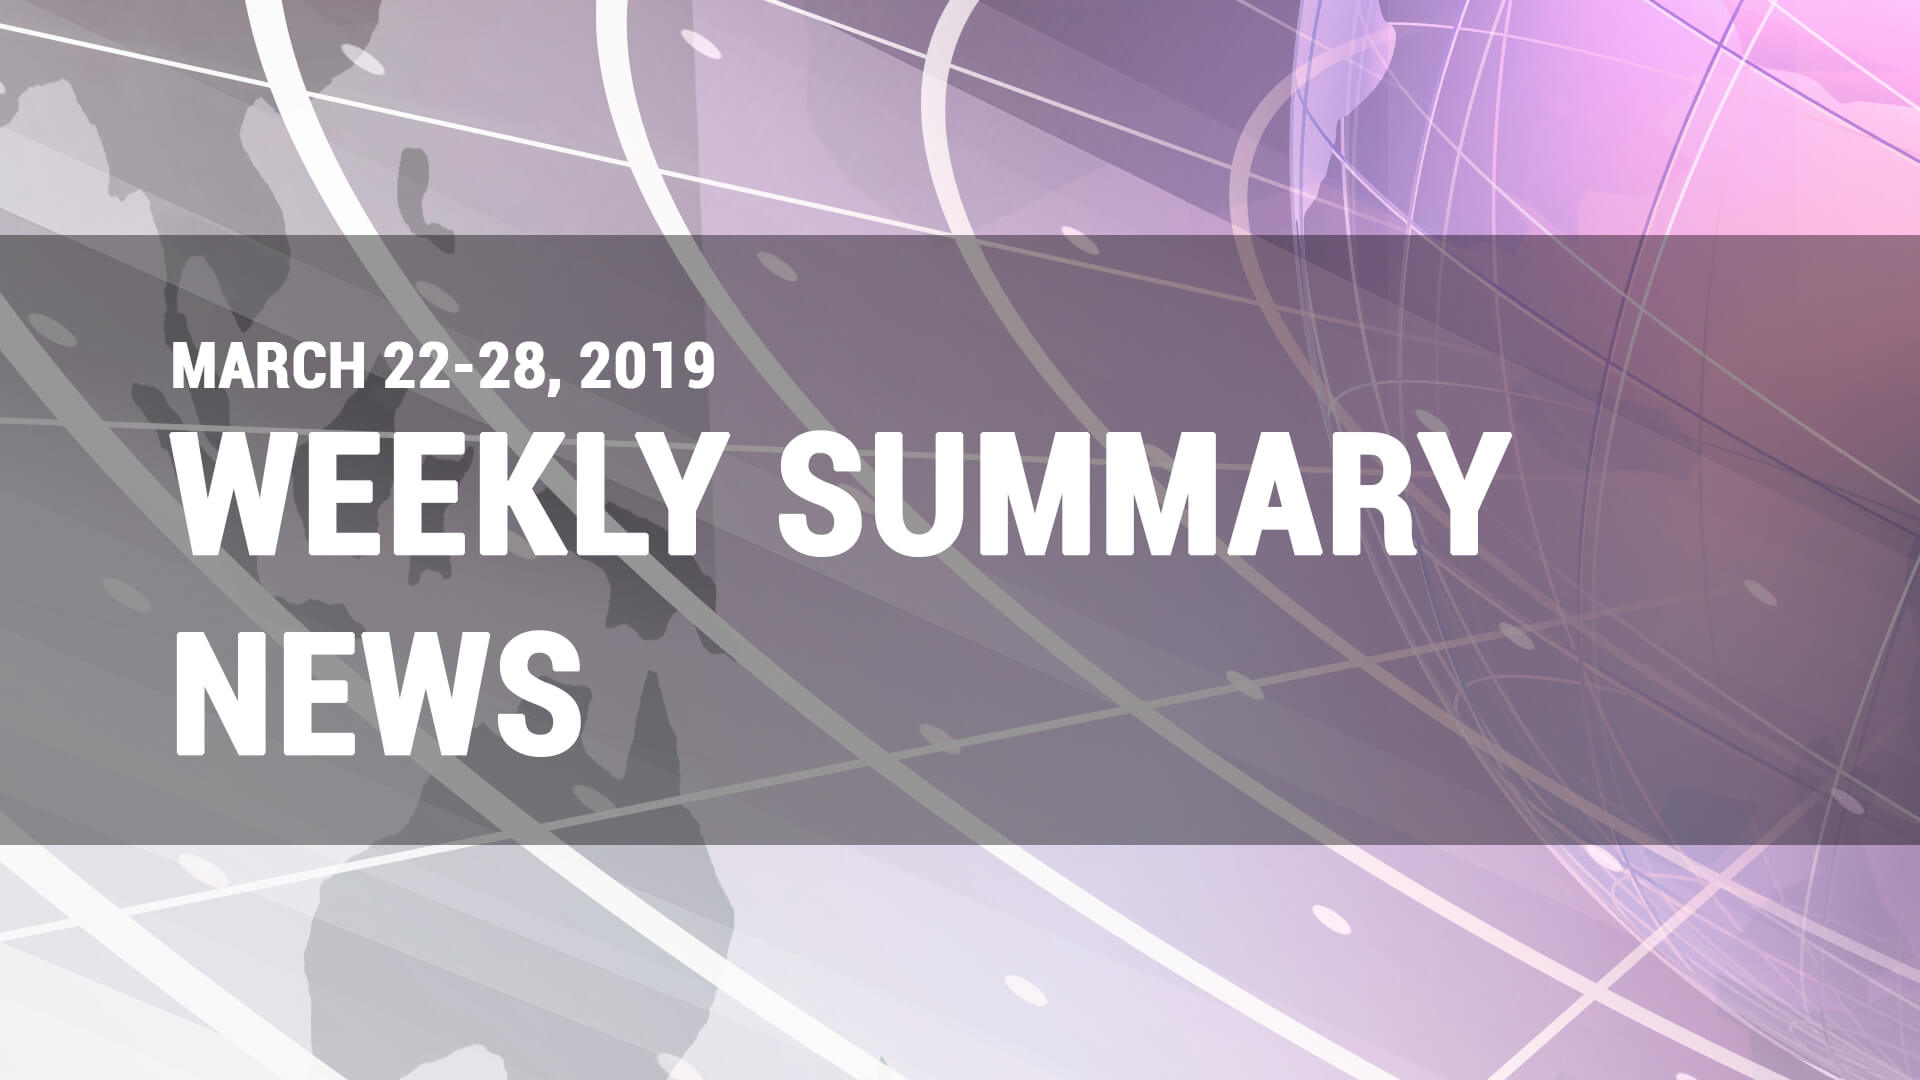 Weekly news summary for March 22-28, 2019 - Finance Brokerage